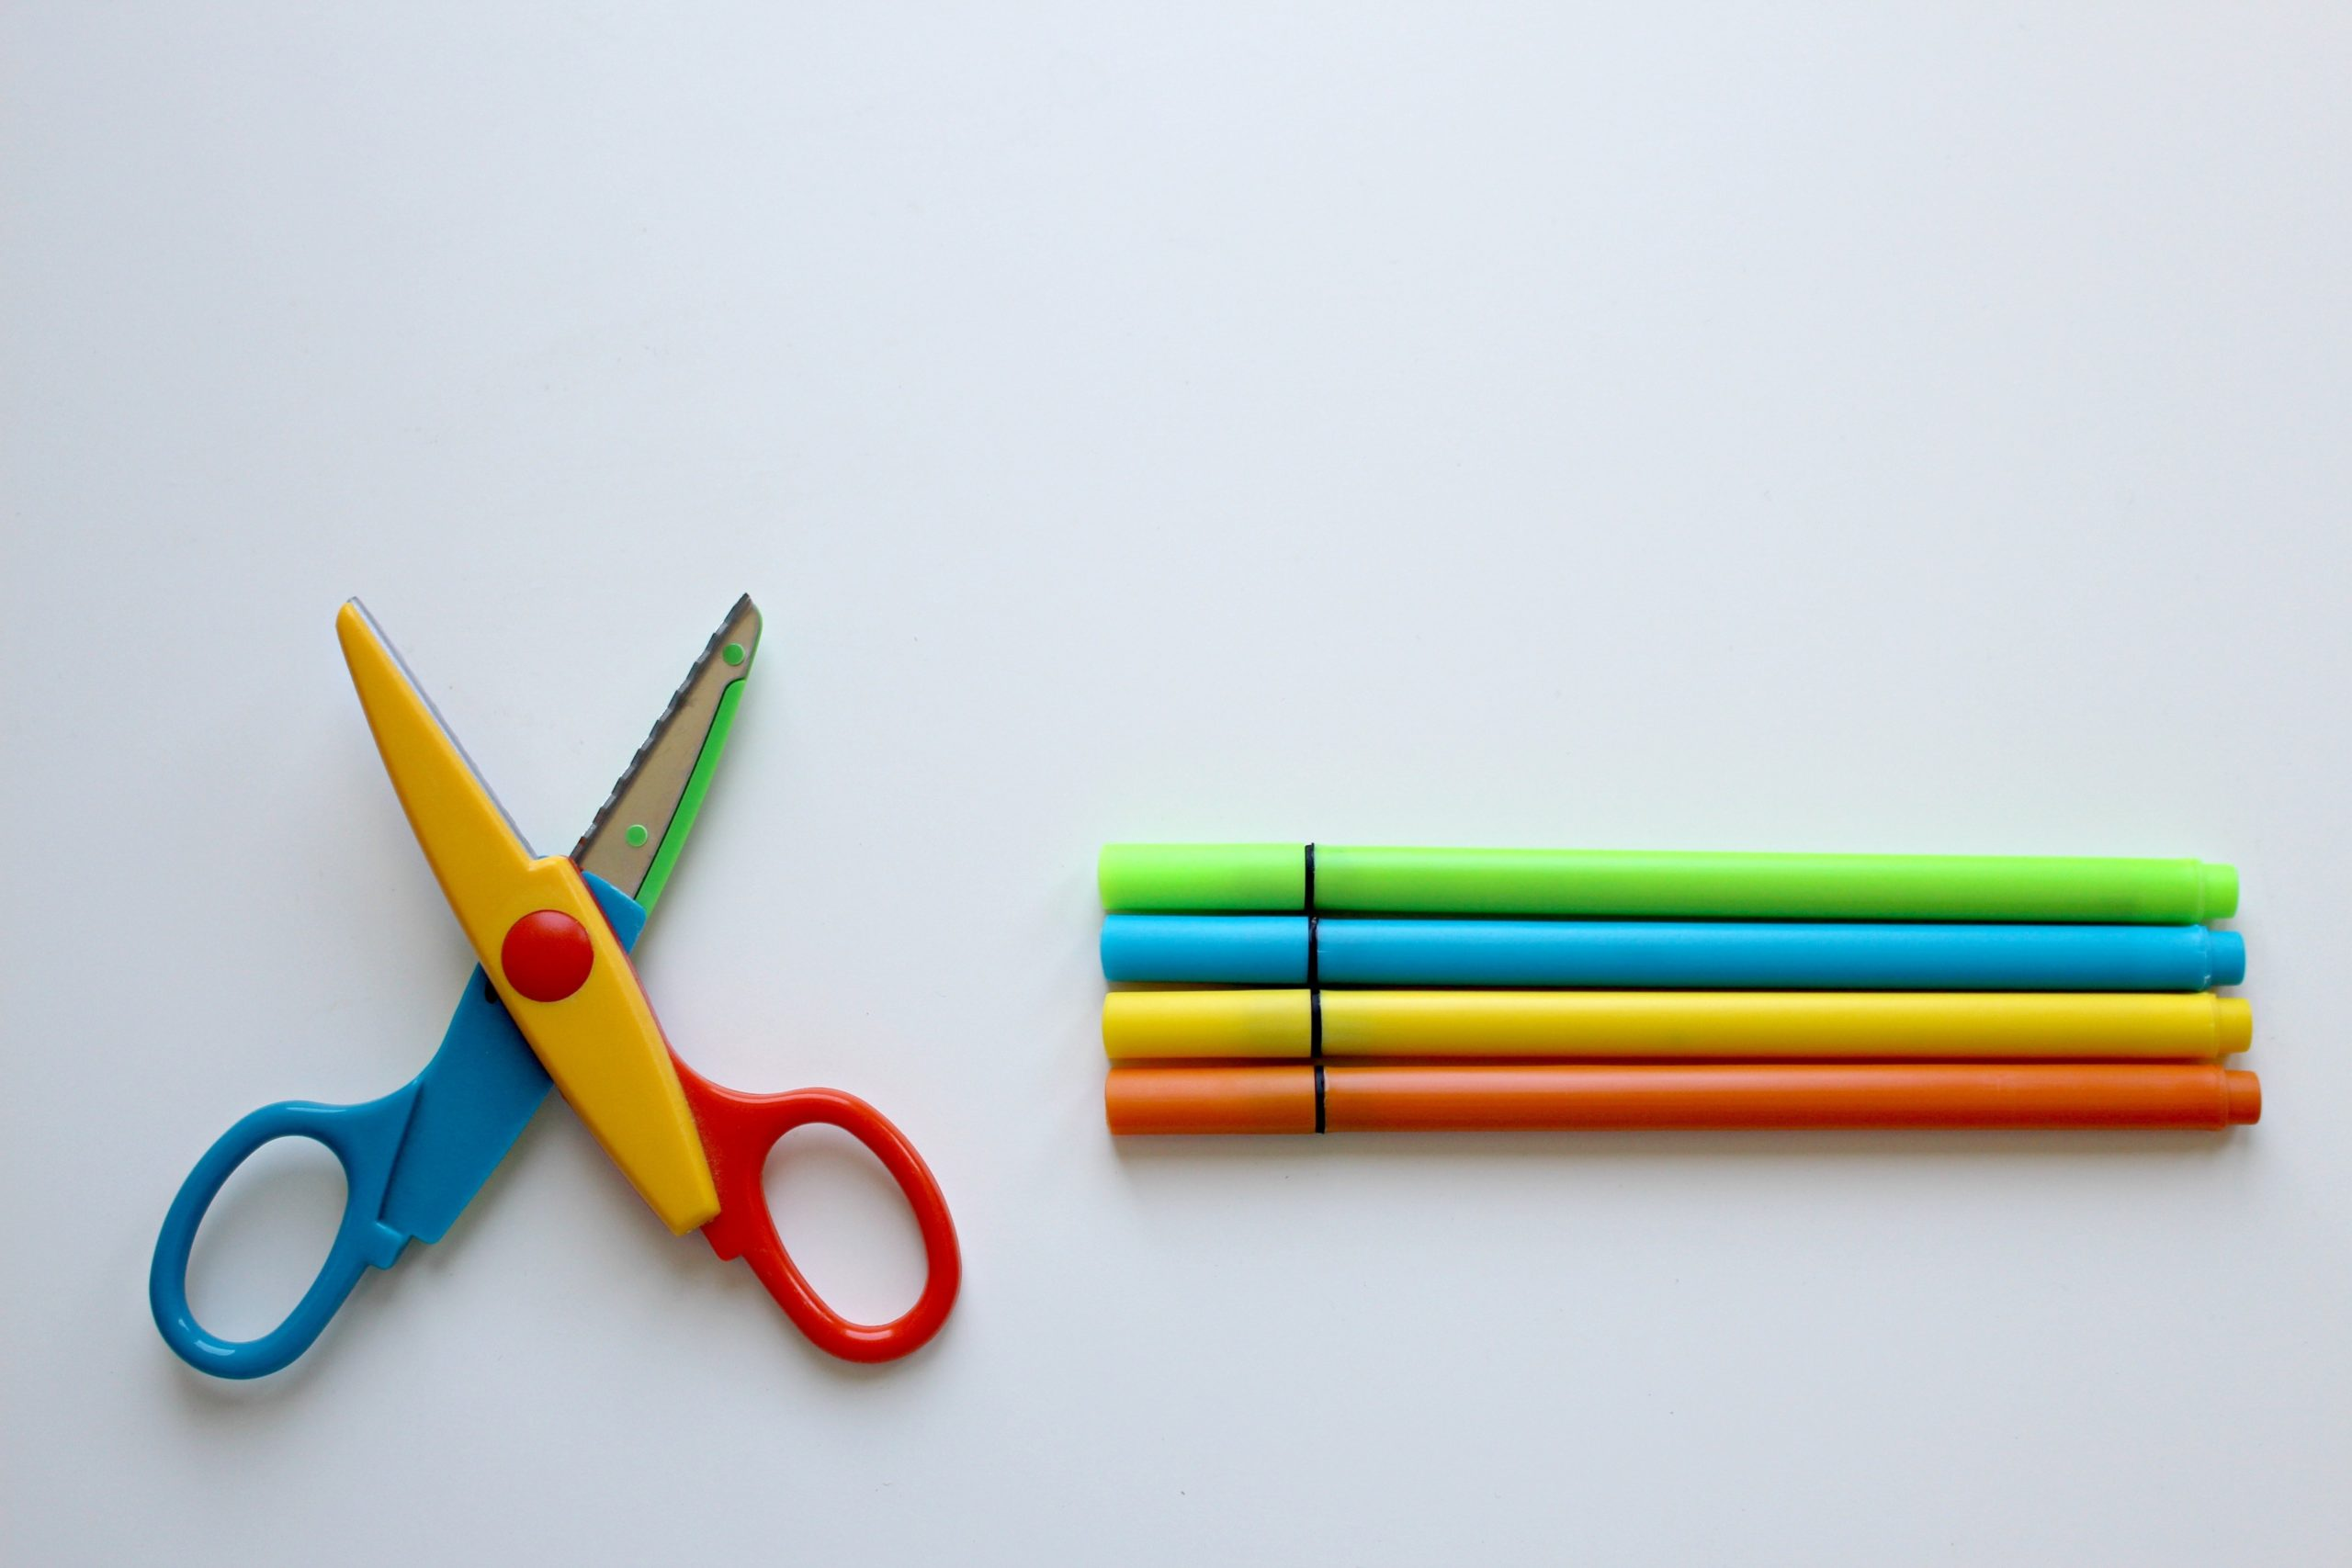 A colorful pair of scissors next to a set of colored pens